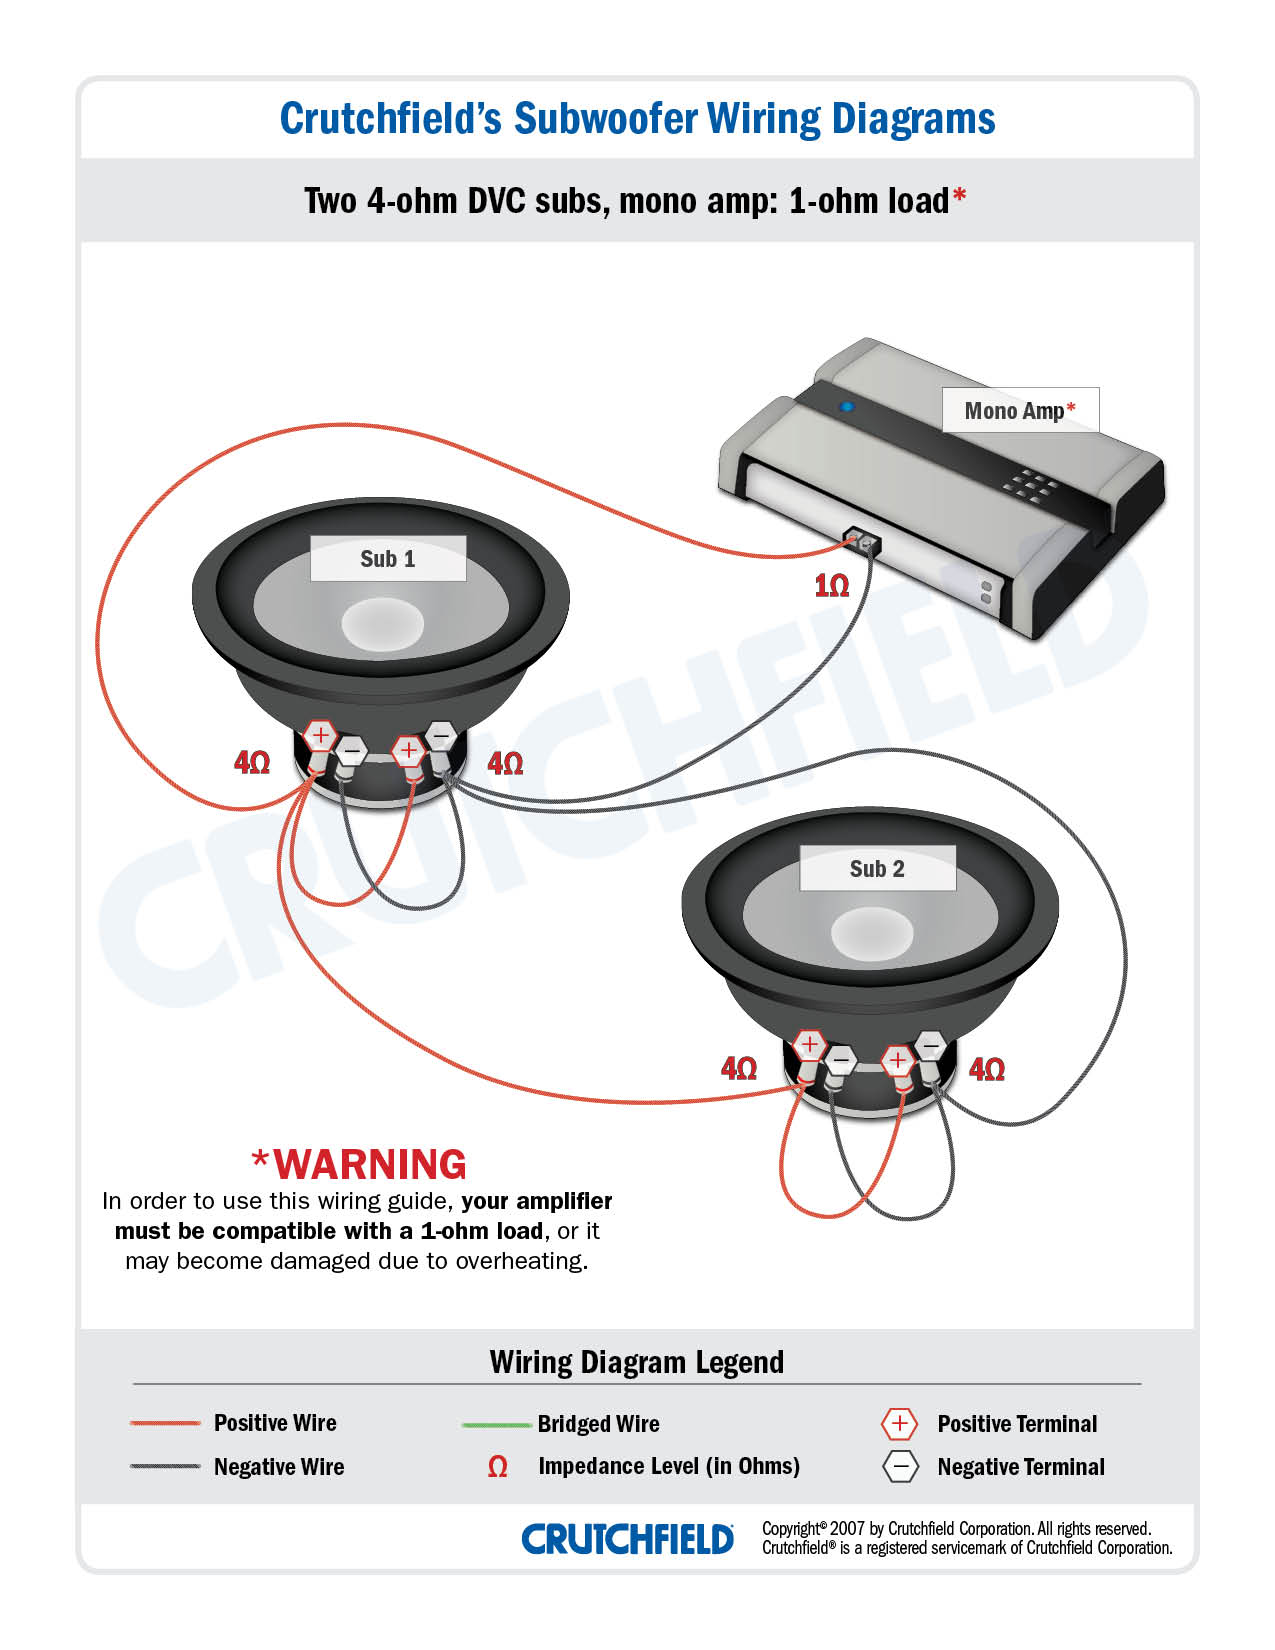 Wiring Subwoofers — What's All This About Ohms? on